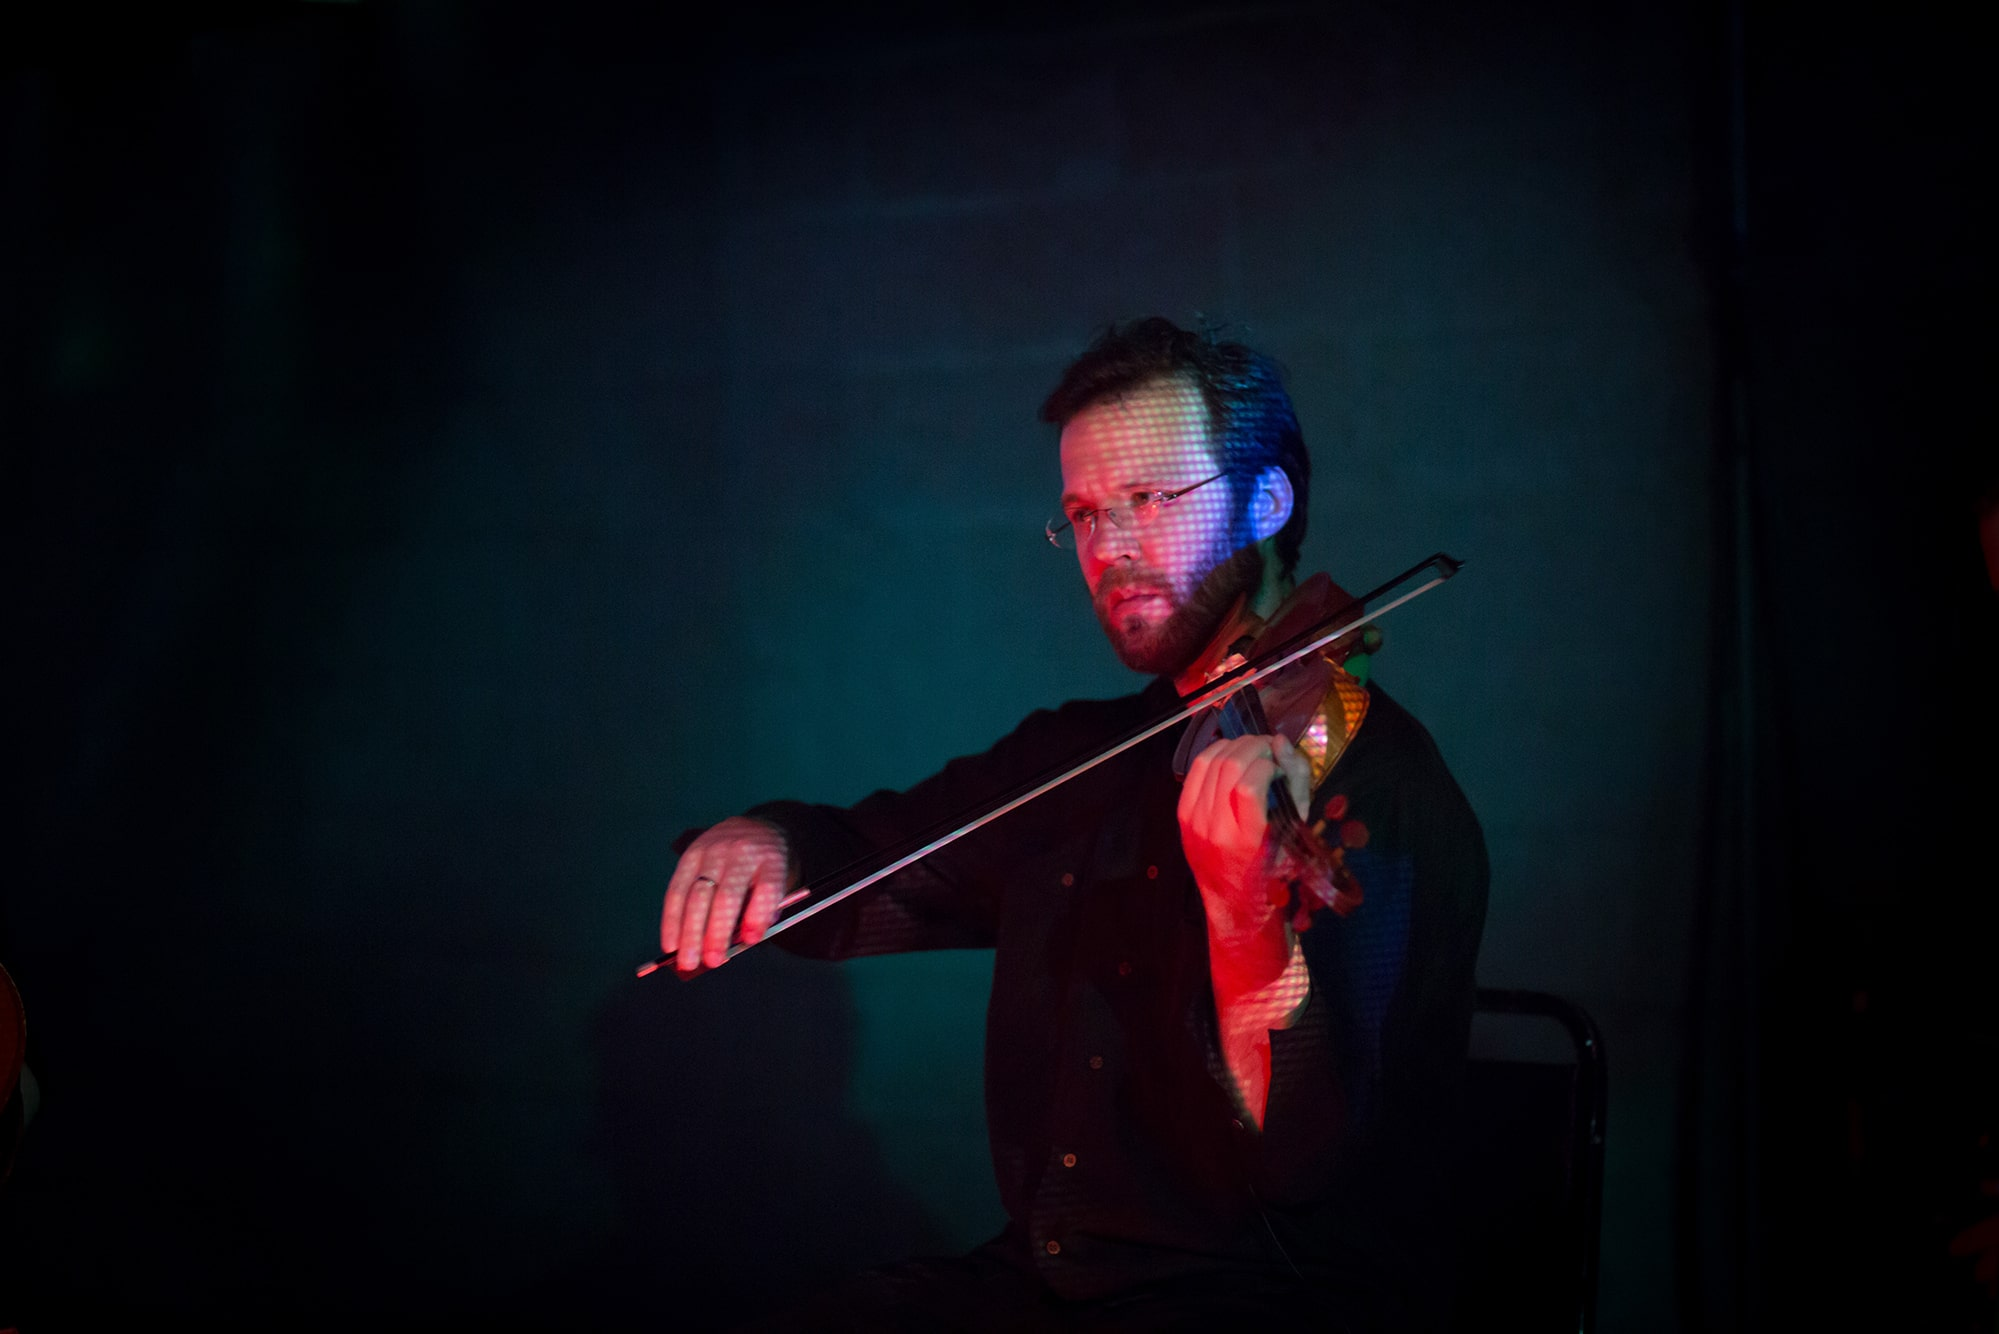 Erik Carlson performing Randy Gibson's <em>Apparitions of The Four Pillars in The Midwinter Starfield under The Astral 789 Duet</em> at the 2014 Avant Music Festival